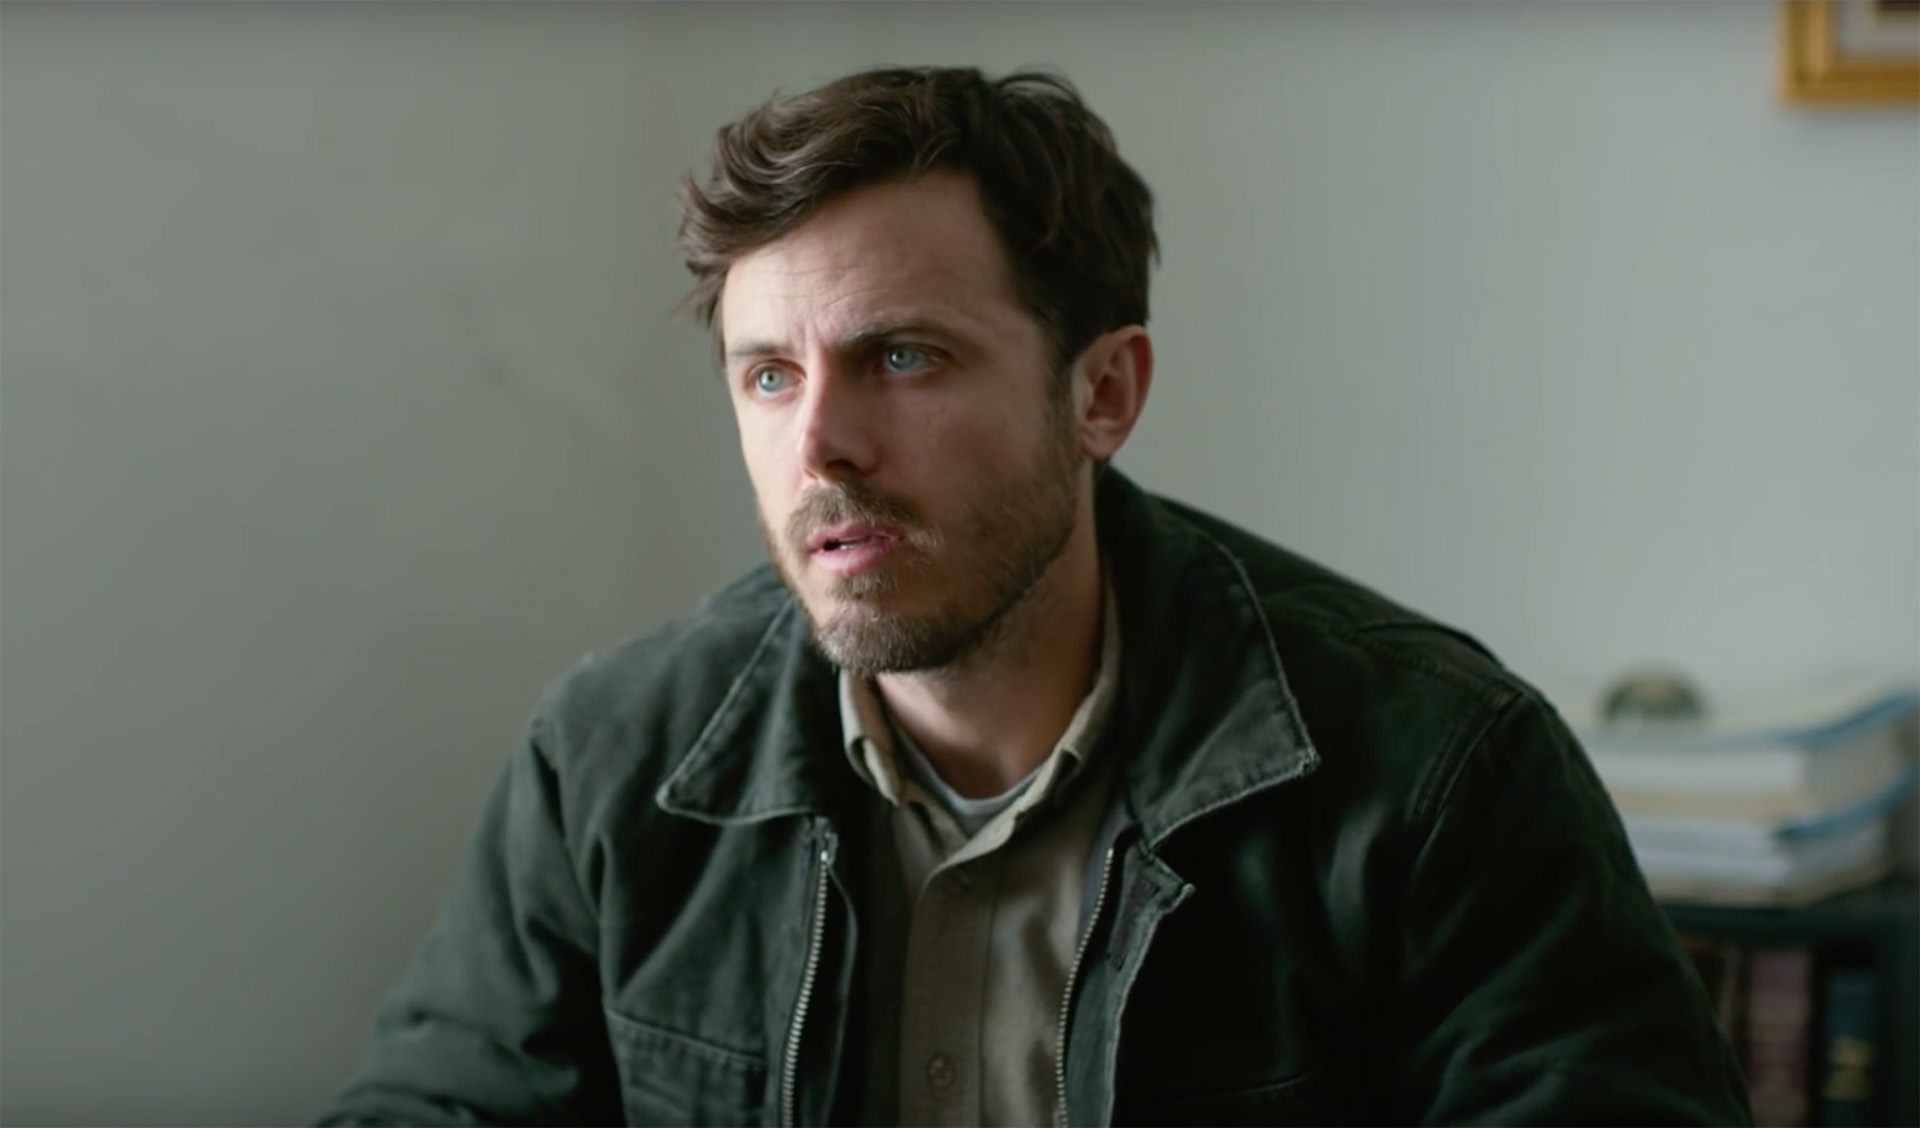 Alfonso Cuaron (Gravity) et Casey Affleck (Manchester By The Sea) vont tourner une série sur une secte dans Ce qui vous attend en séries Tv ! Casey-Affleck-Manchester-by-the-Sea